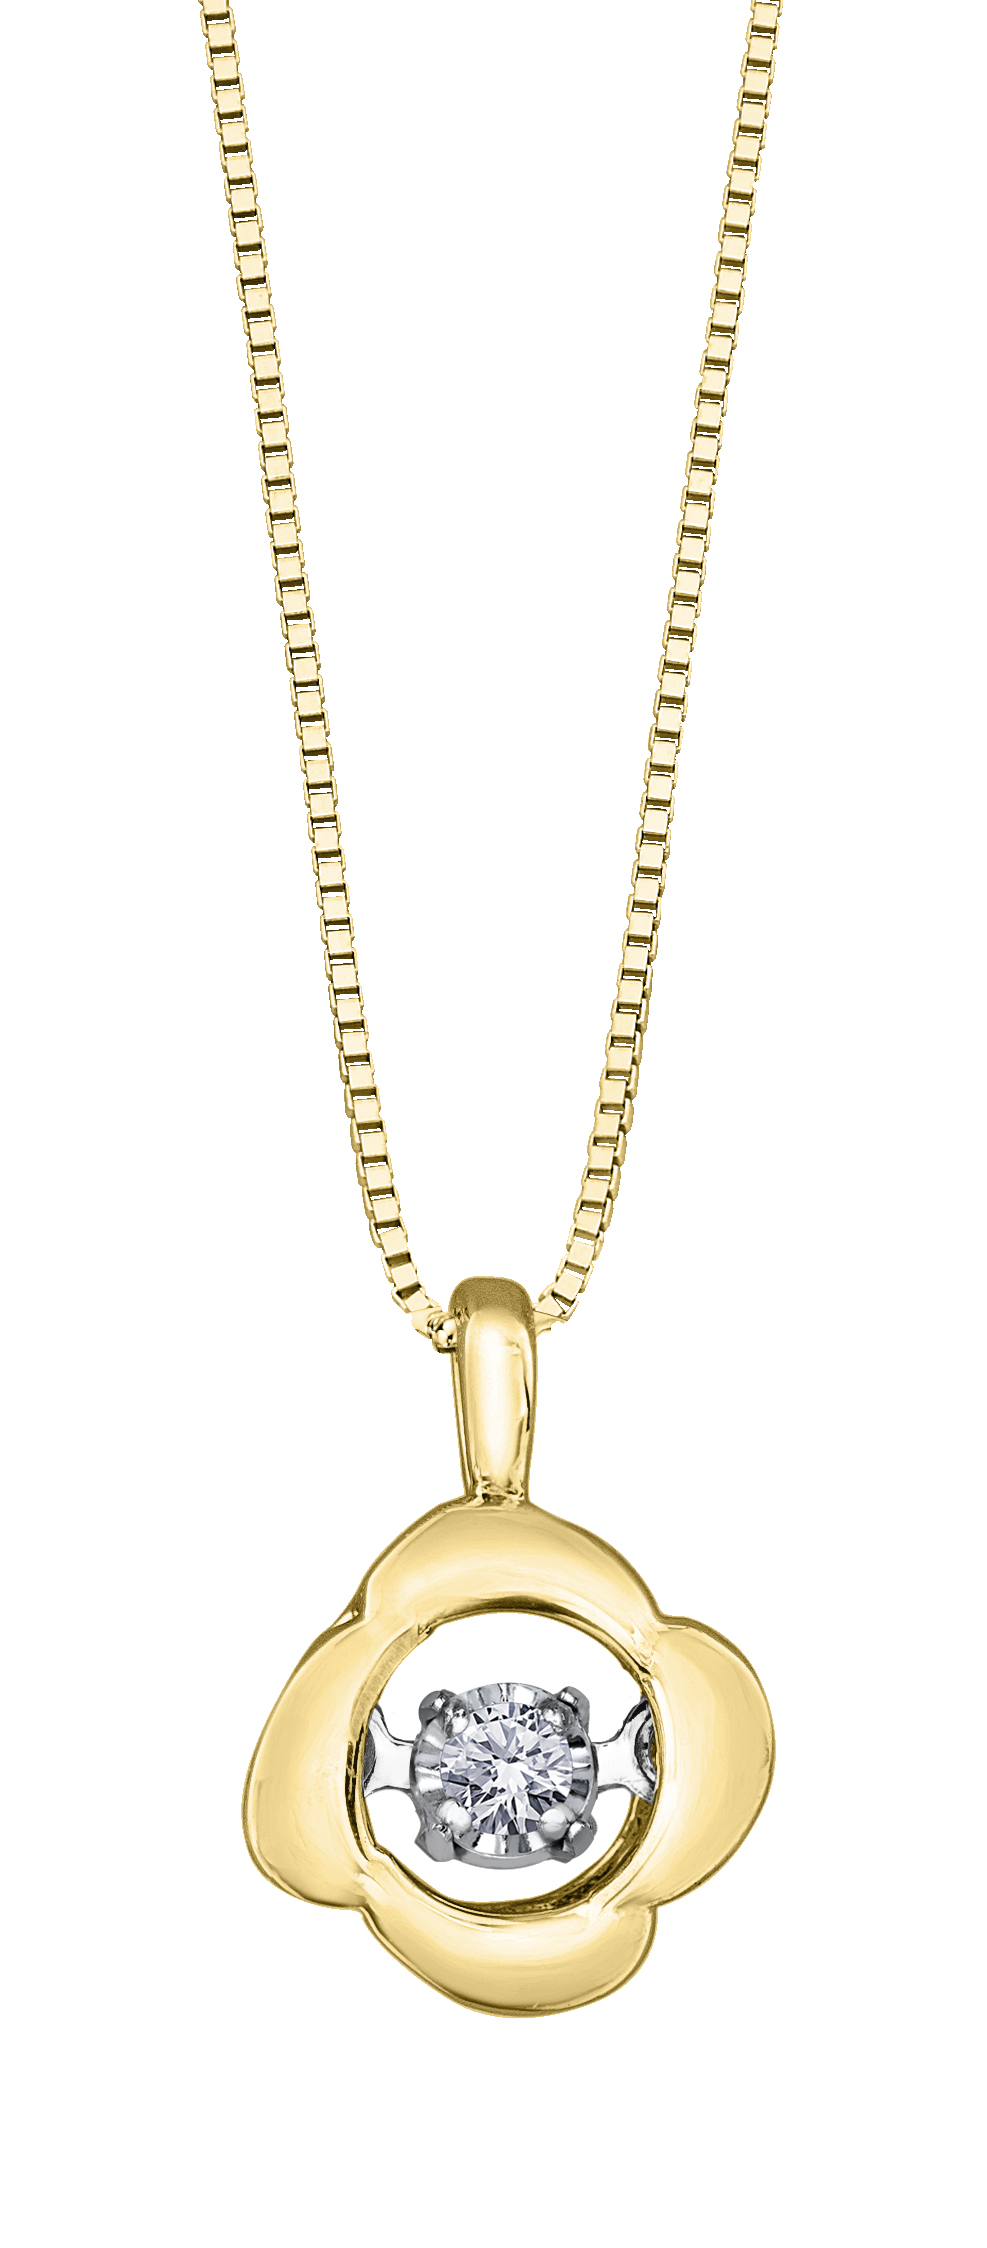 Éclat du Nord Dancing Diamond Pendant - 10K yellow gold & Canadian diamond